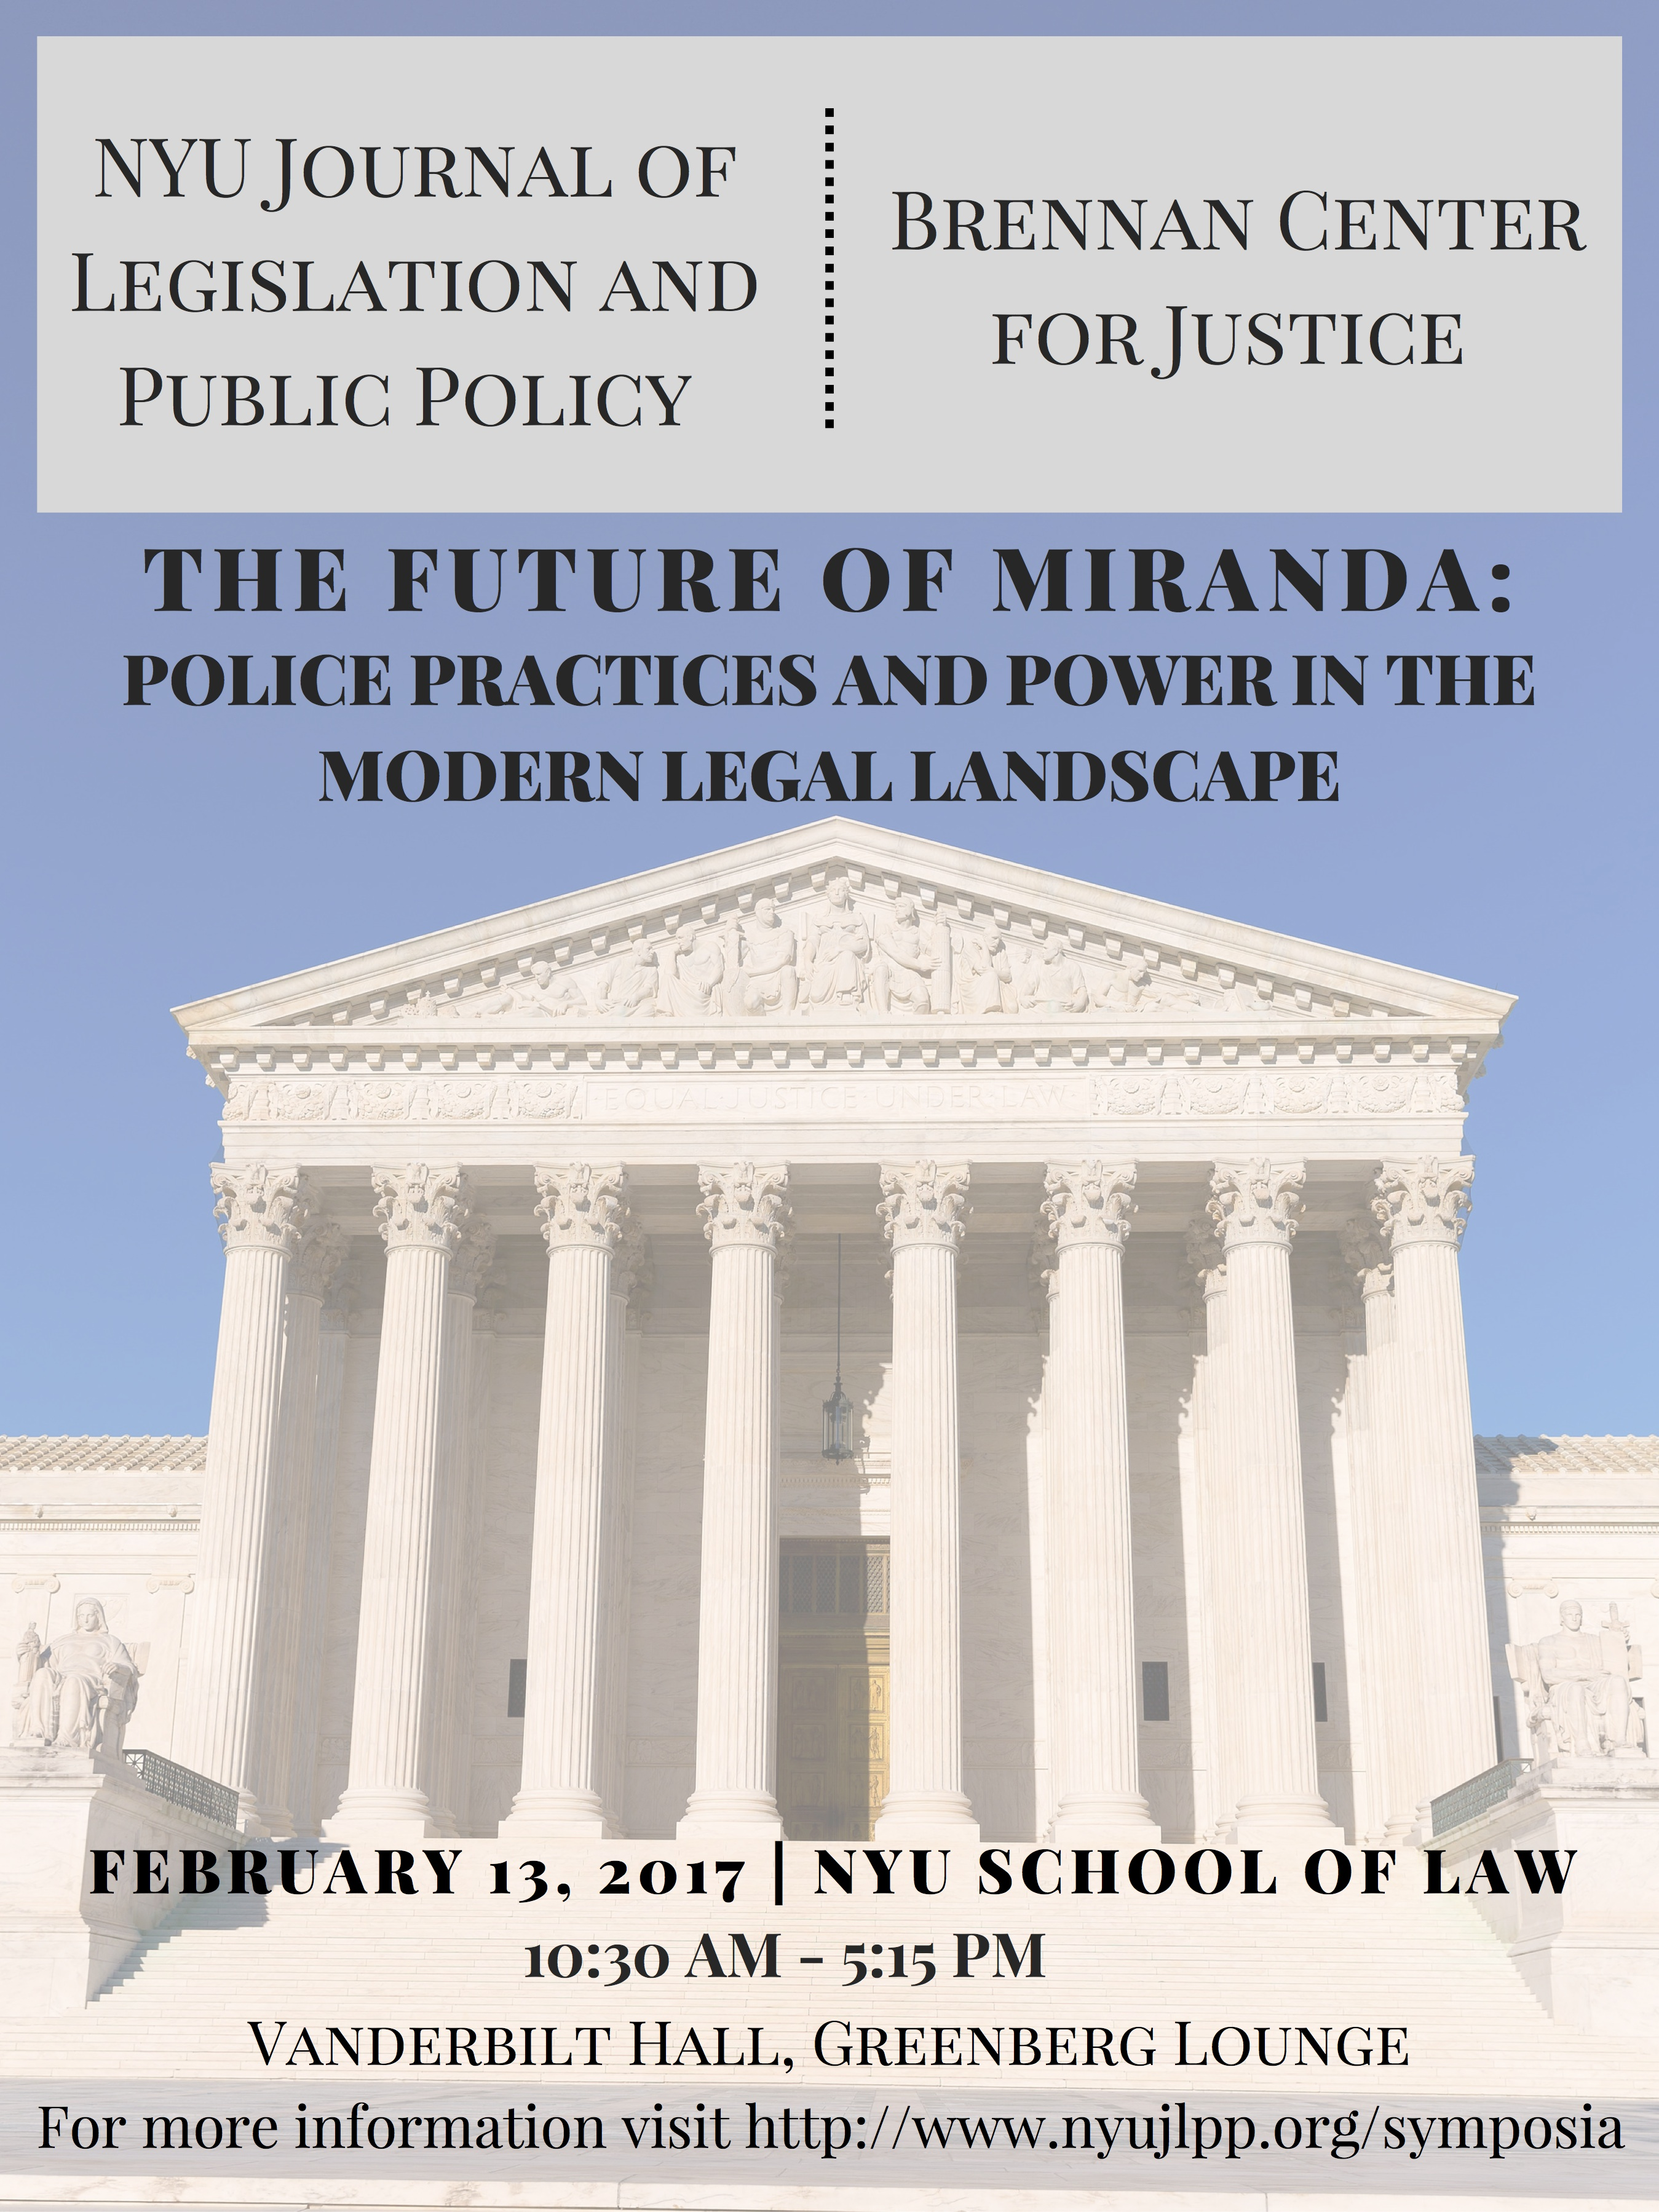 """The Future of <i>Miranda/i>"": Police Practices and Power in the Modern Legal Landscape"